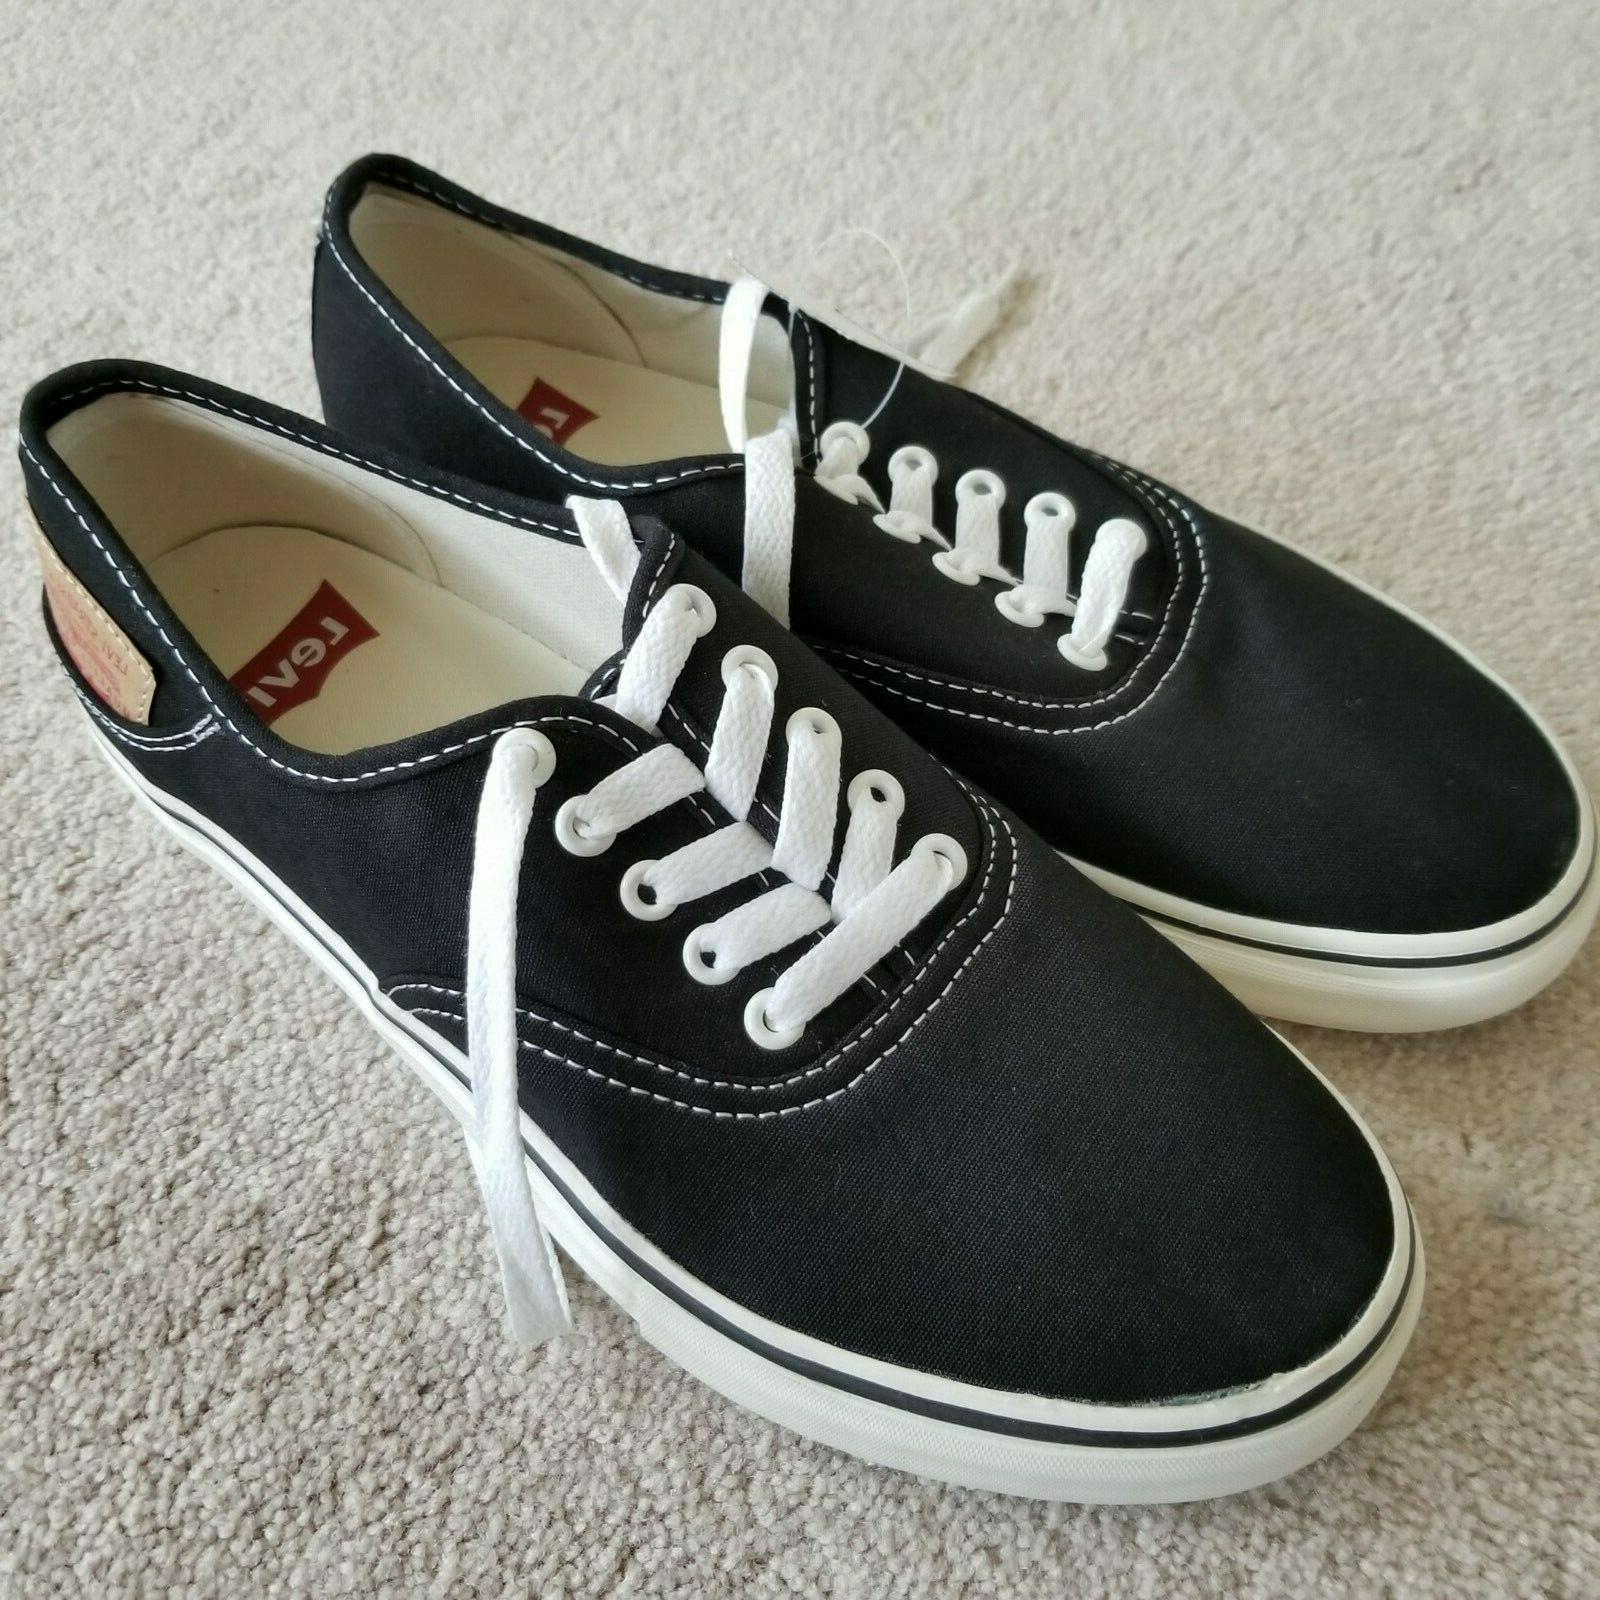 Levi's Black Sneakers Shoes Lace Men's Size NEW